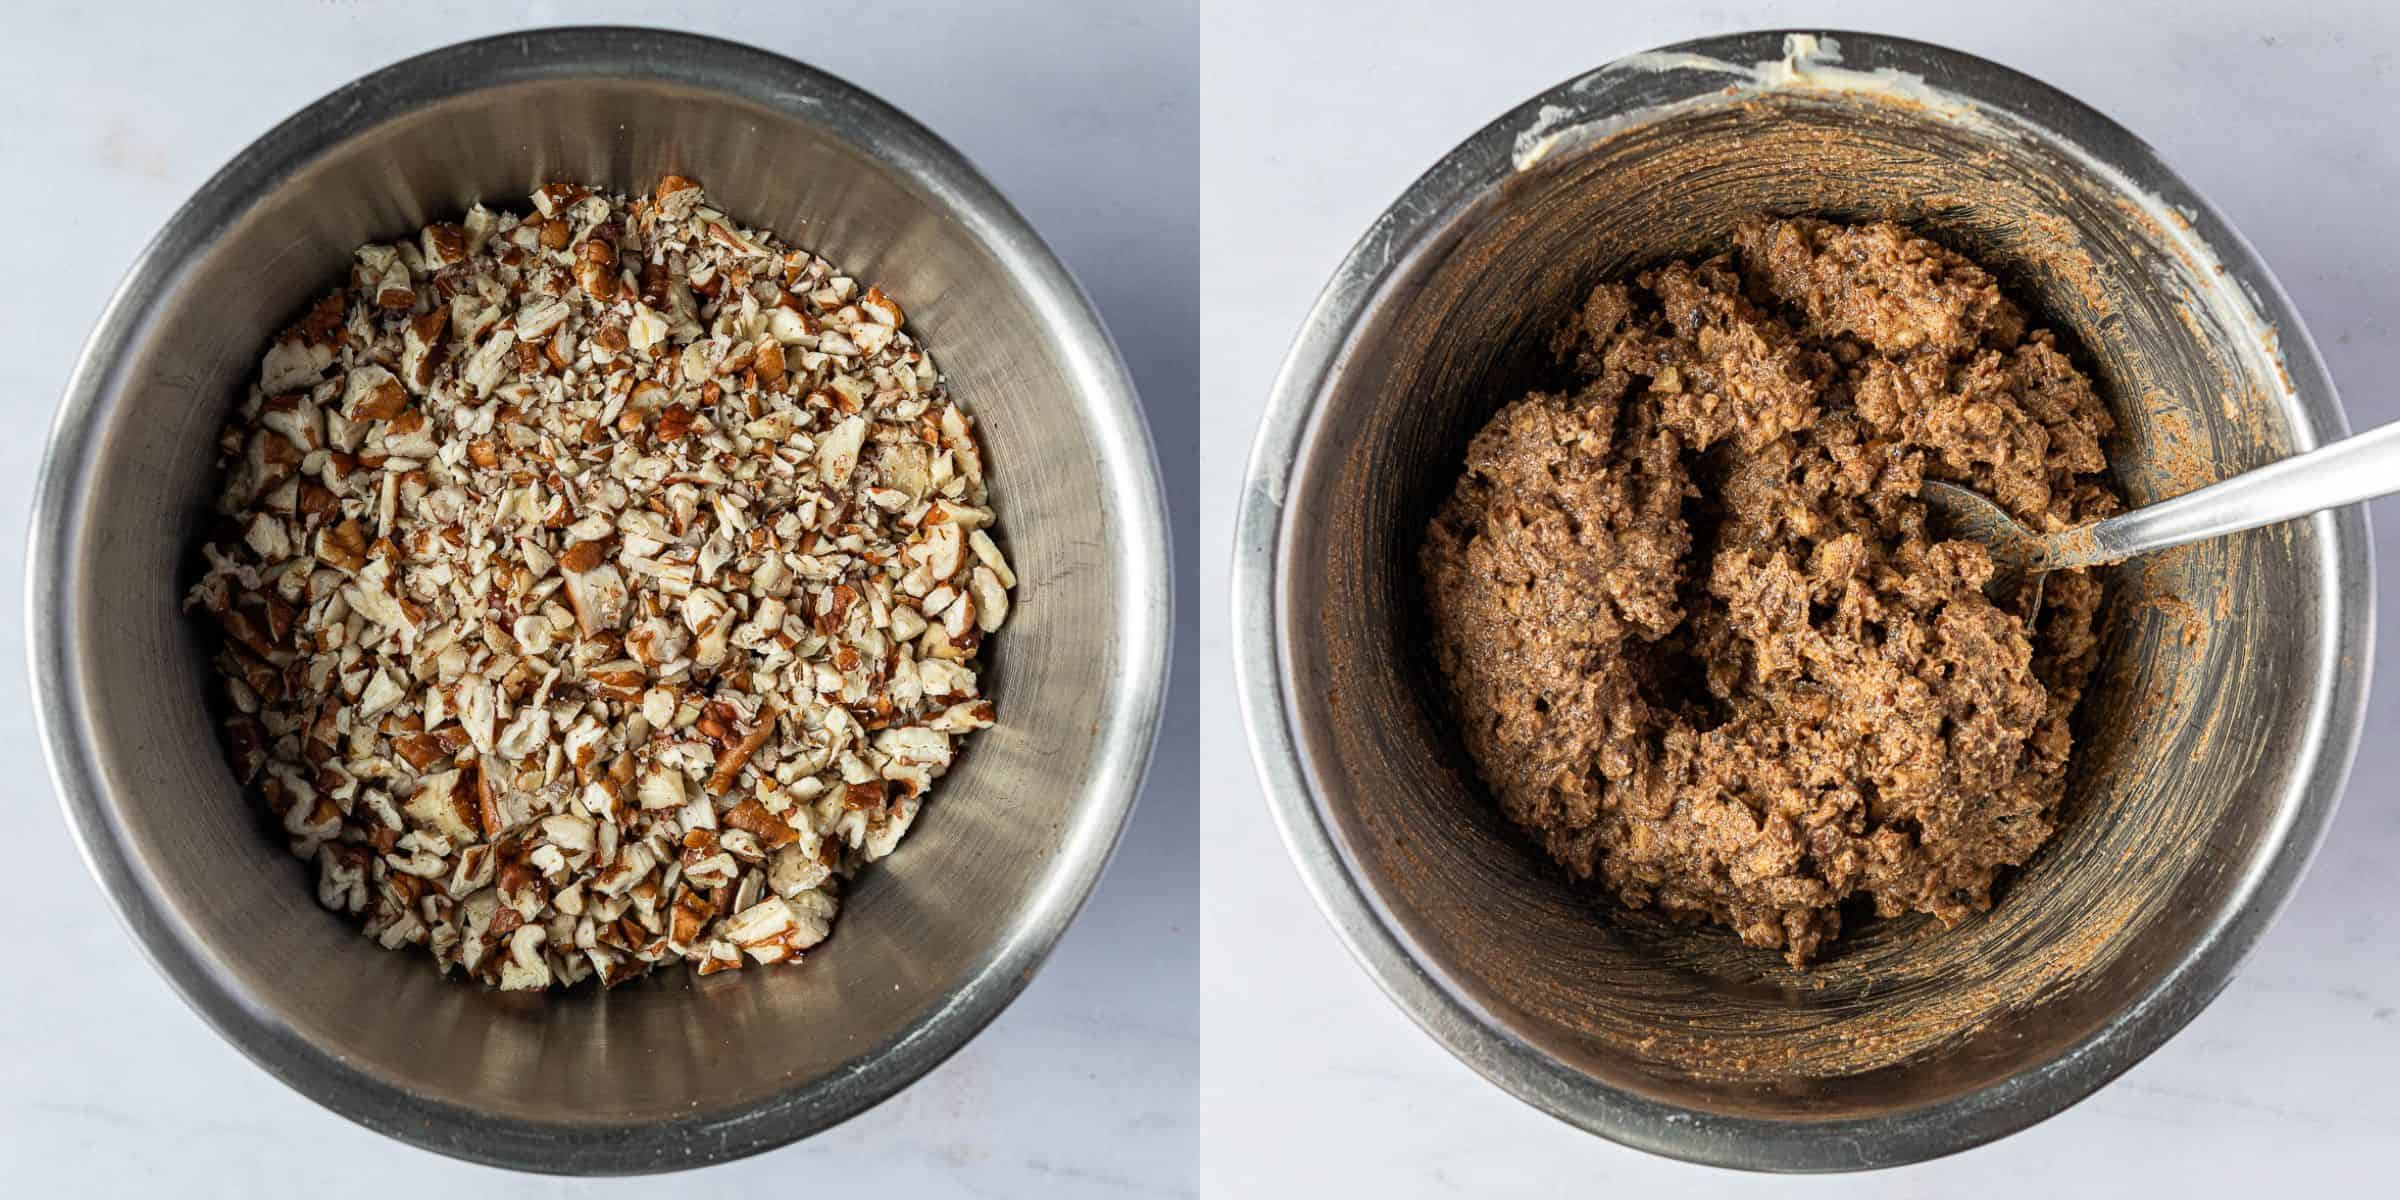 Step 3, a two image collage of the chopped pecans and the mixed filling.